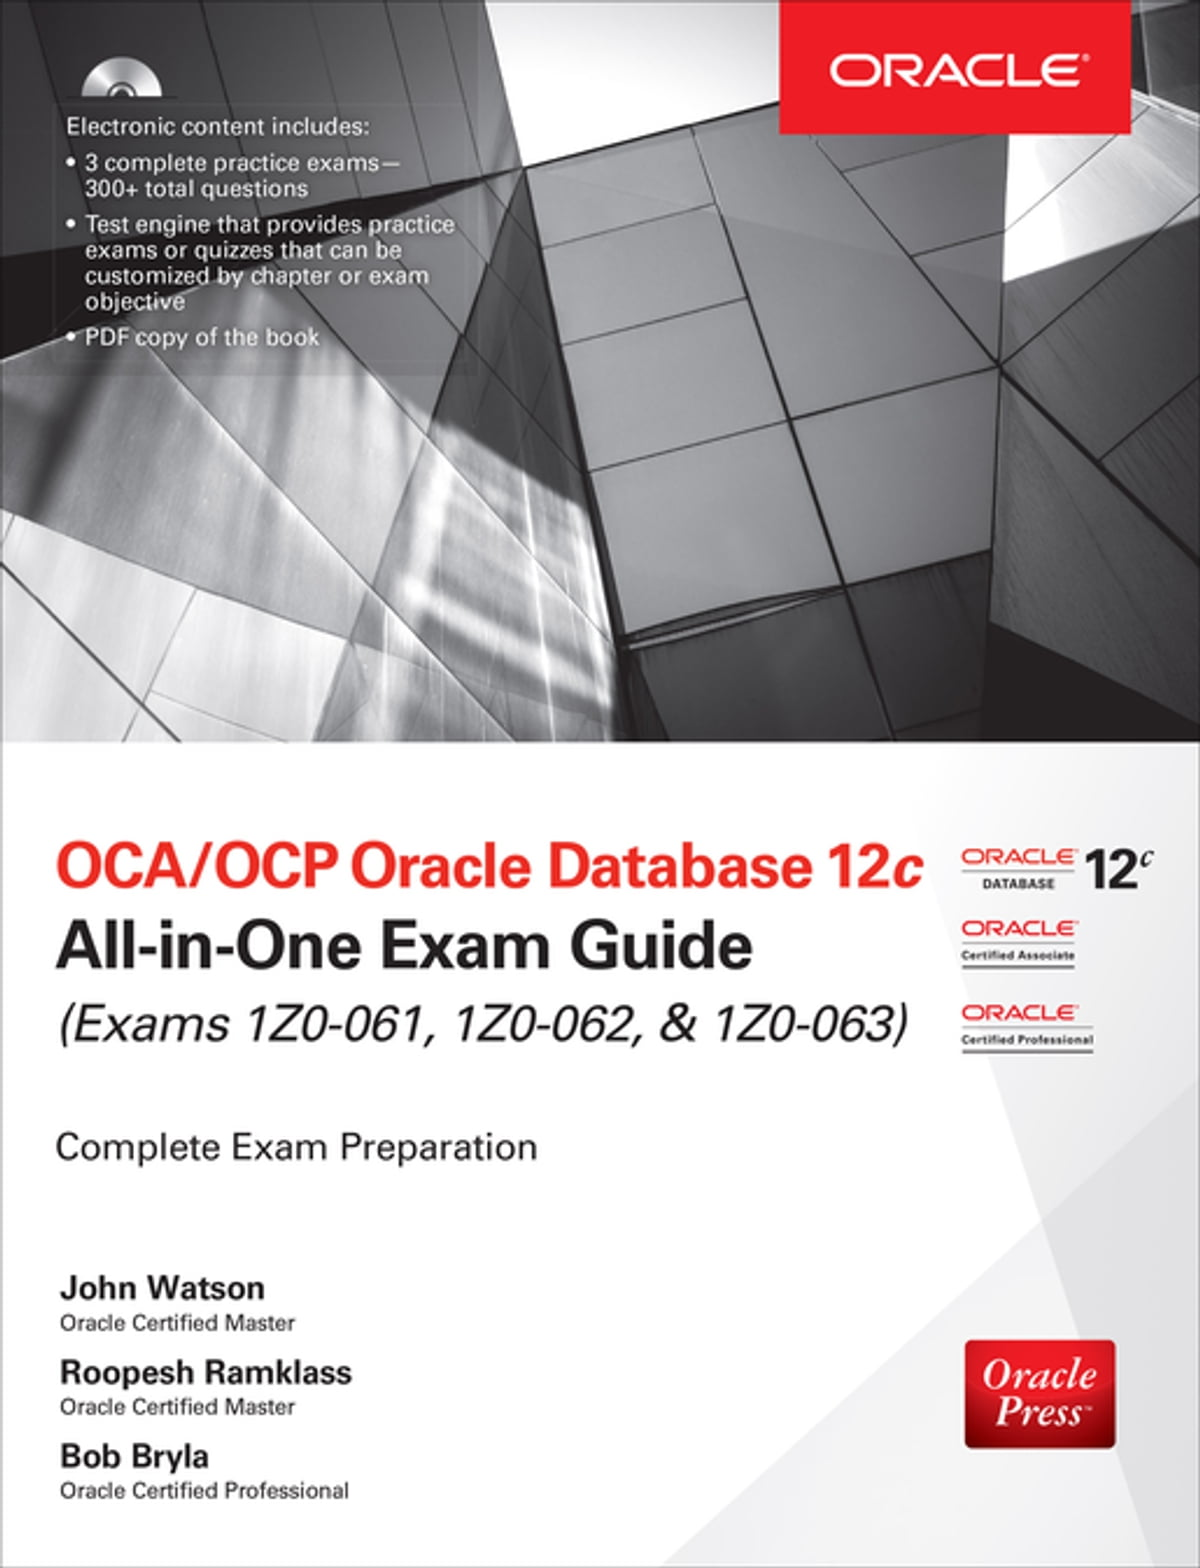 ocp oracle database 12c all-in-one exam guide pdf